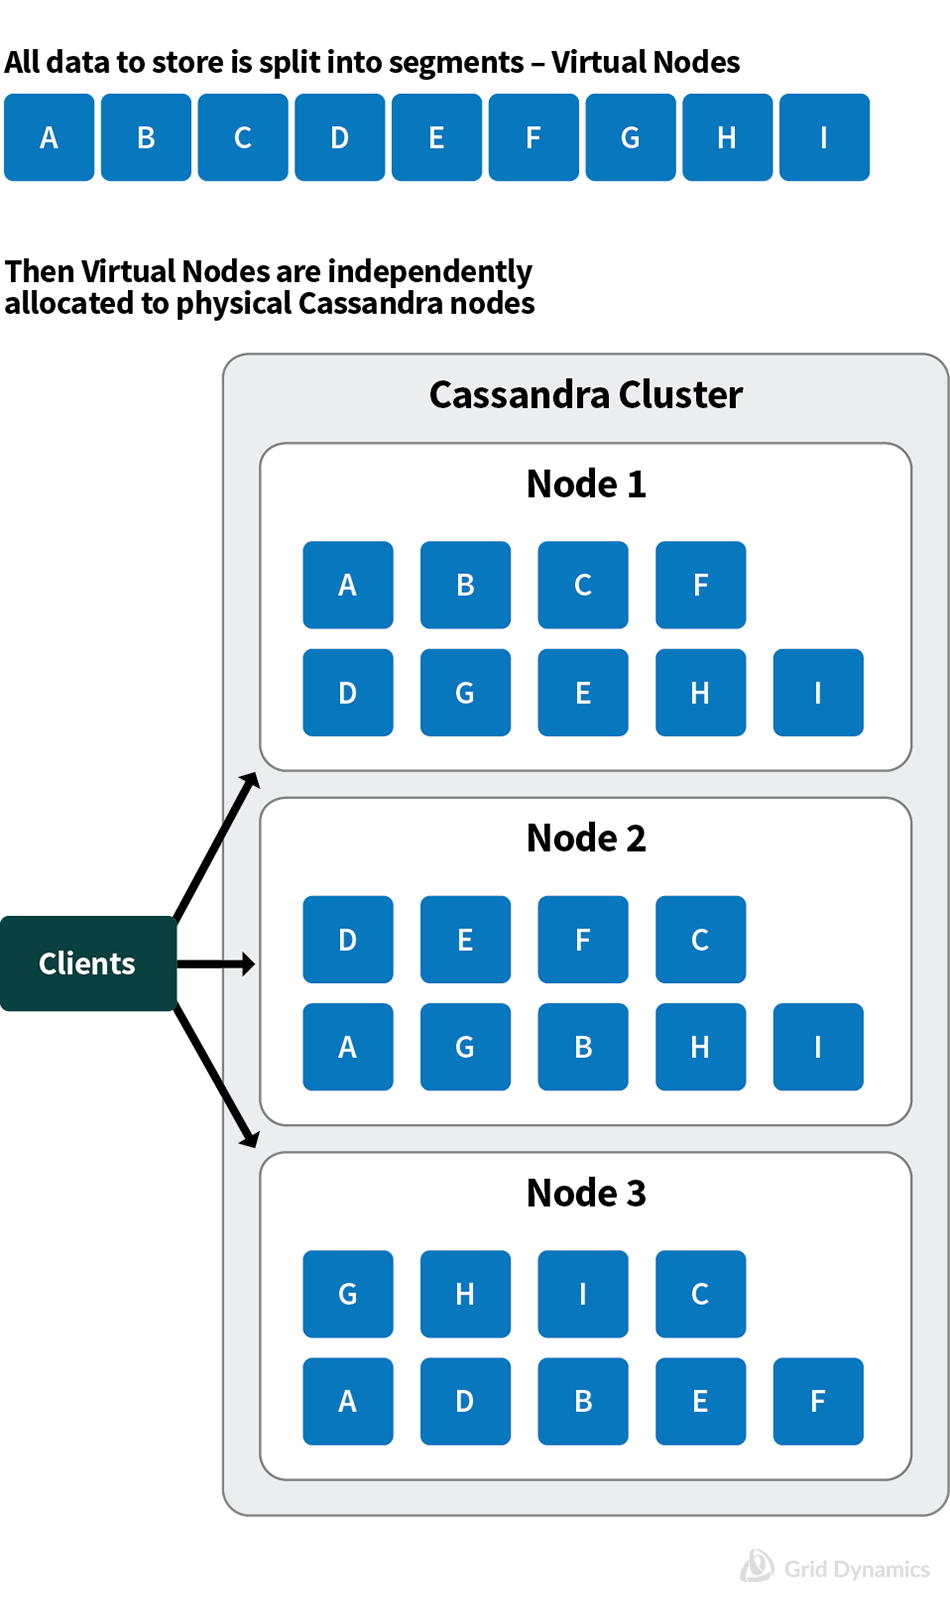 Data replication across Cassandra cluster ; Virtual Nodes, Physical Cassandra Nodes